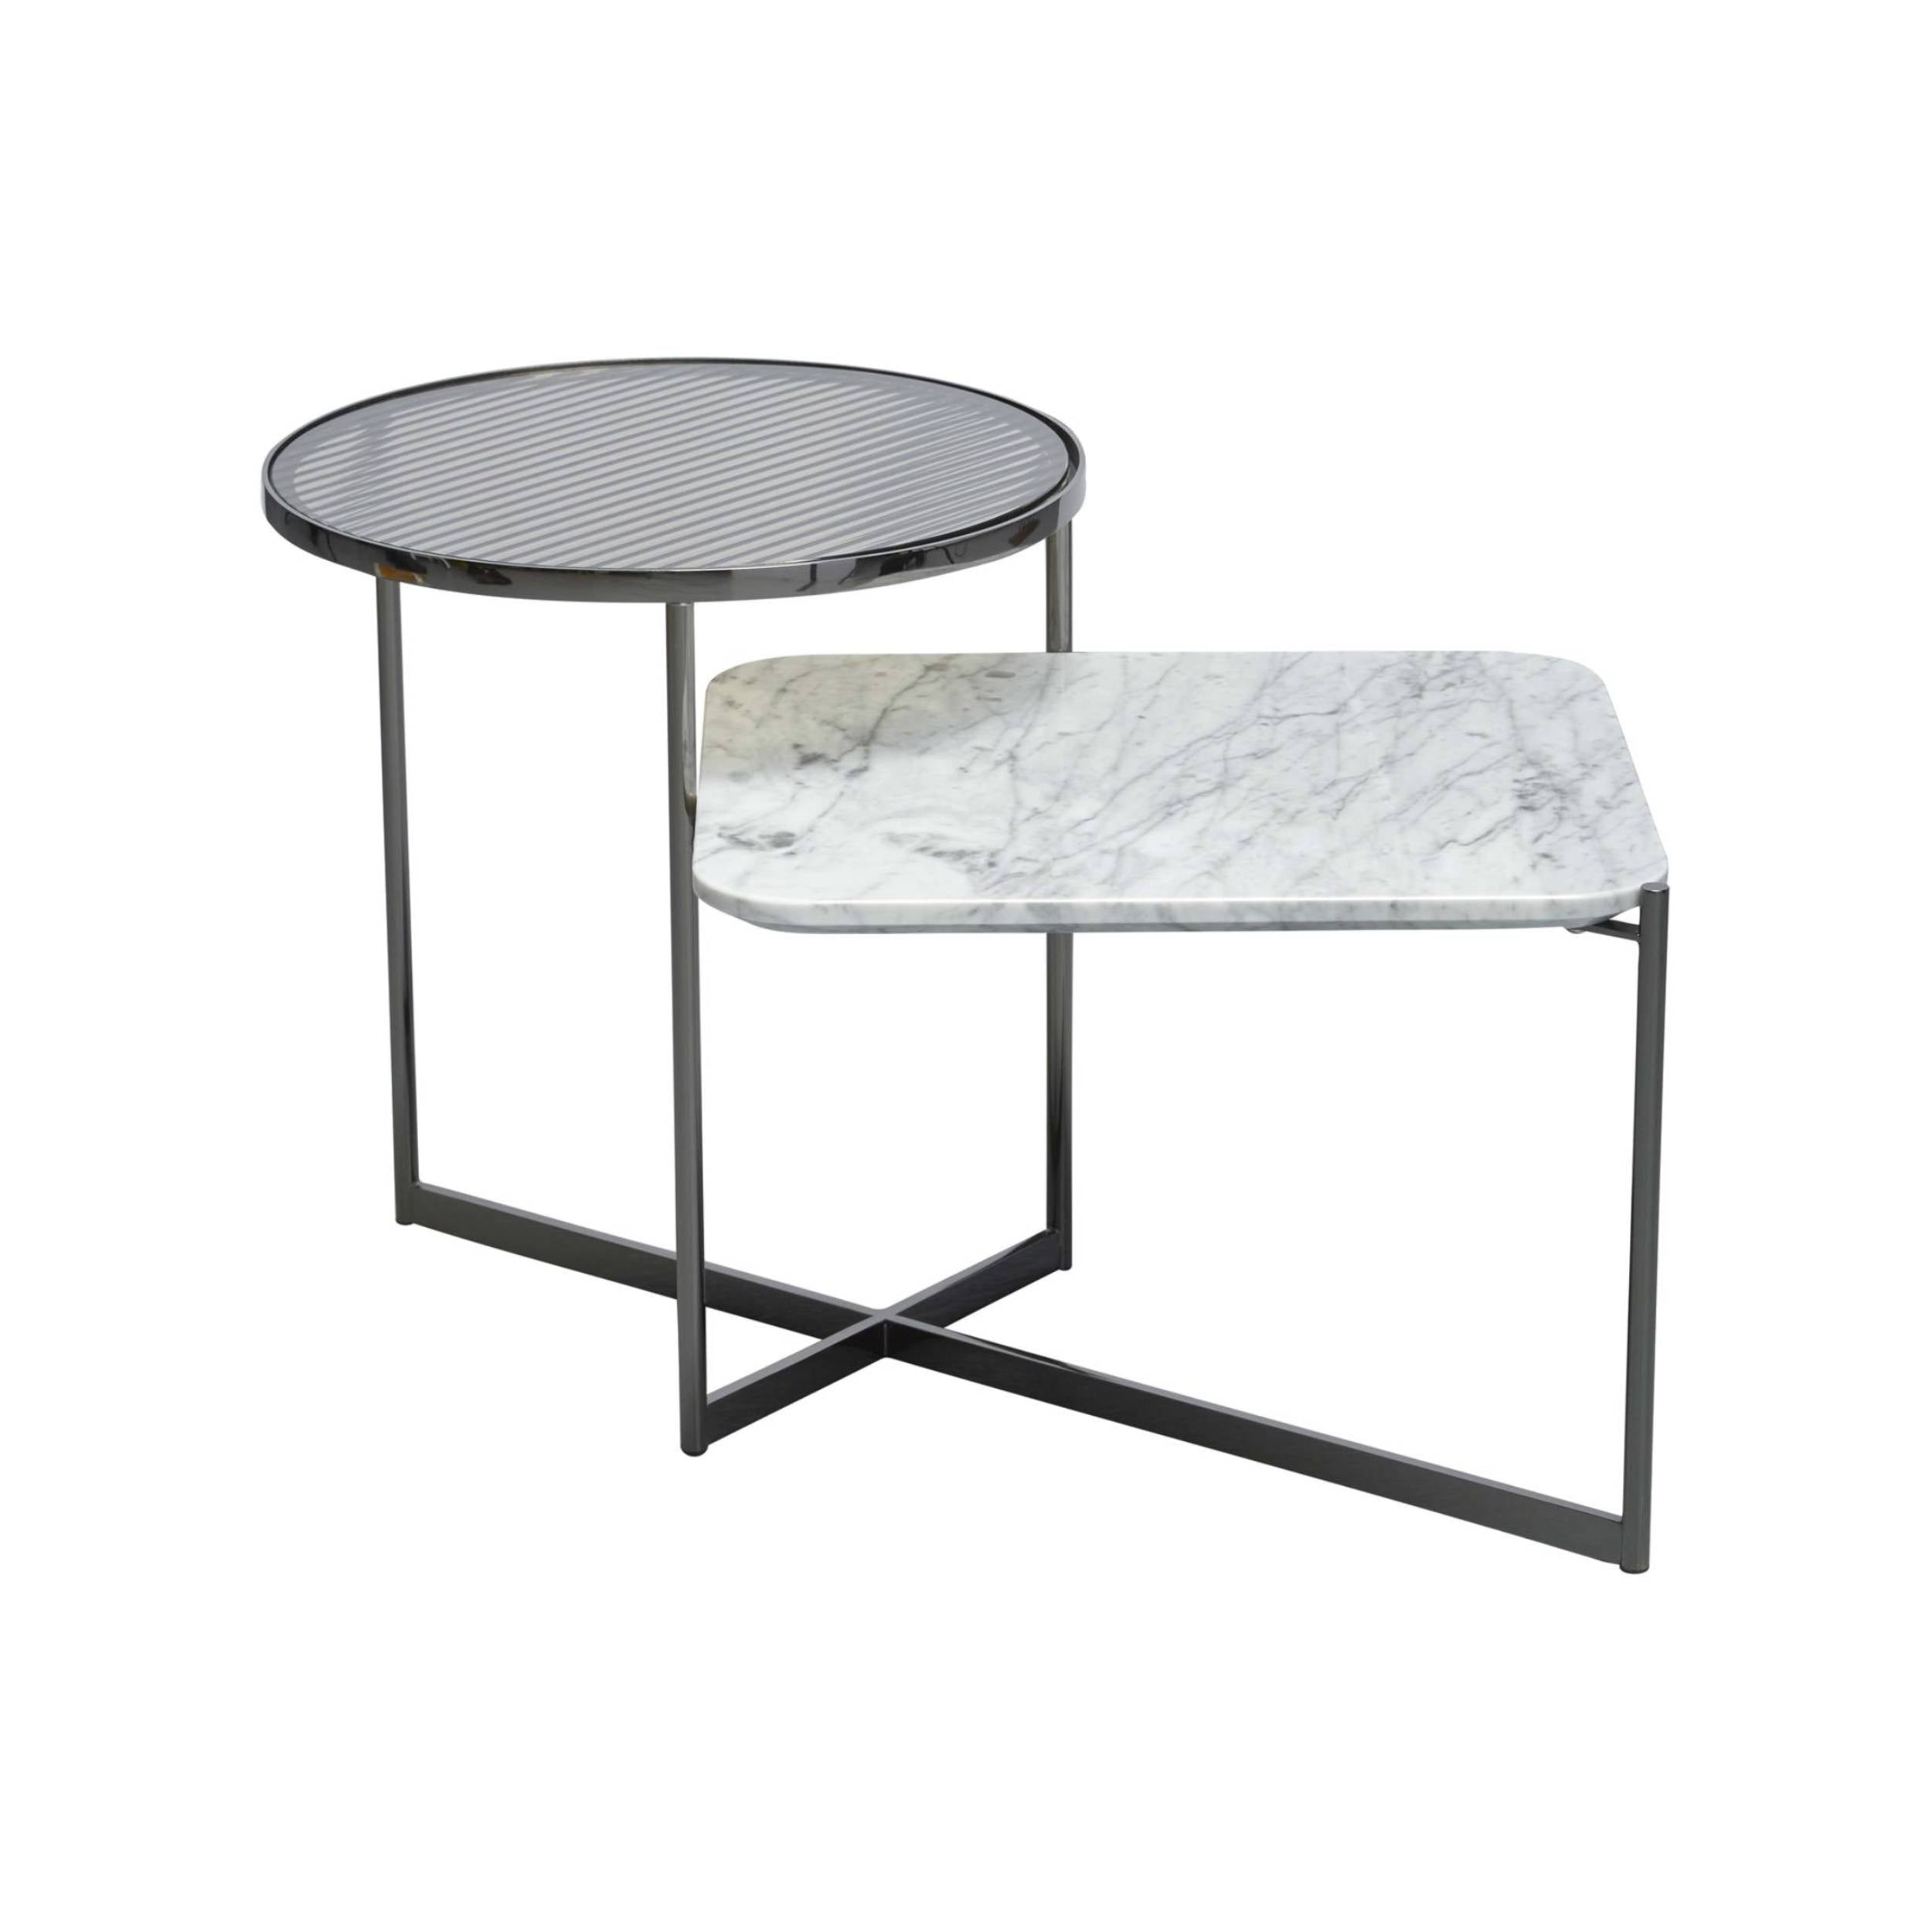 Mohana Side Table Medium: Black Chrome + Fluted Glass + White Marble